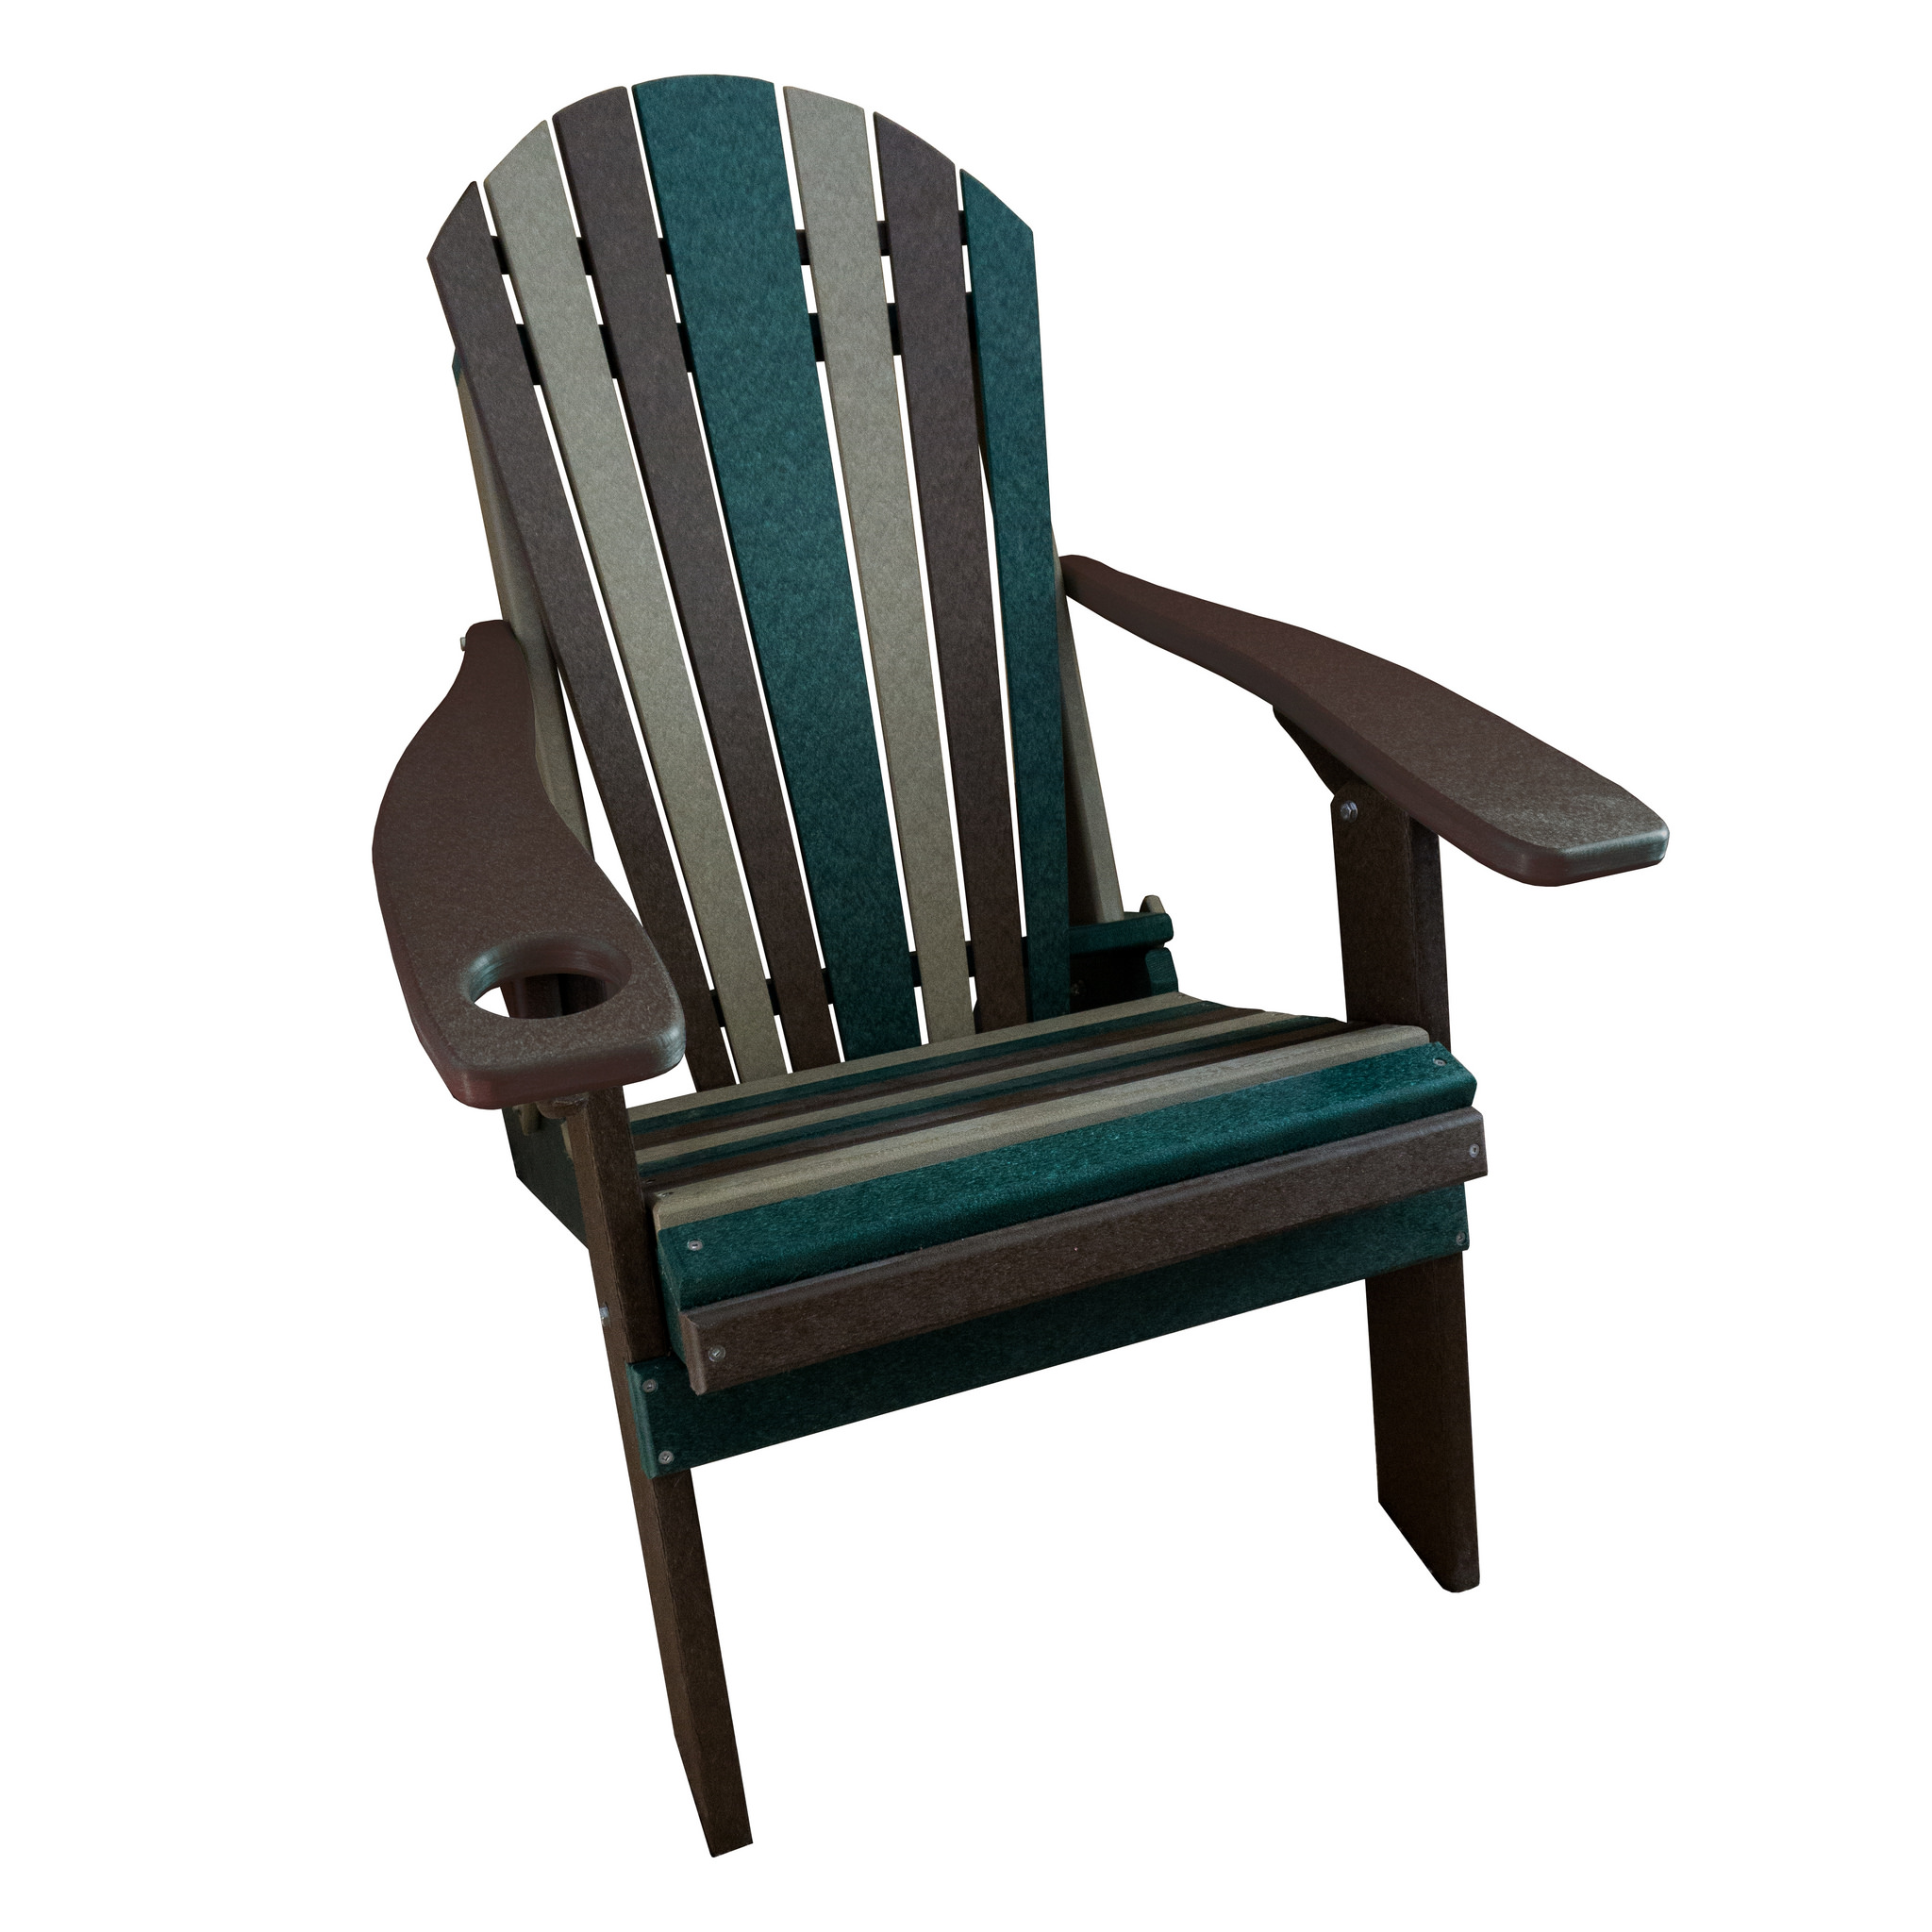 Furniture Barn USA® Camo Style Folding Poly Fanback Adirondack Chair - 1 Cup Holder